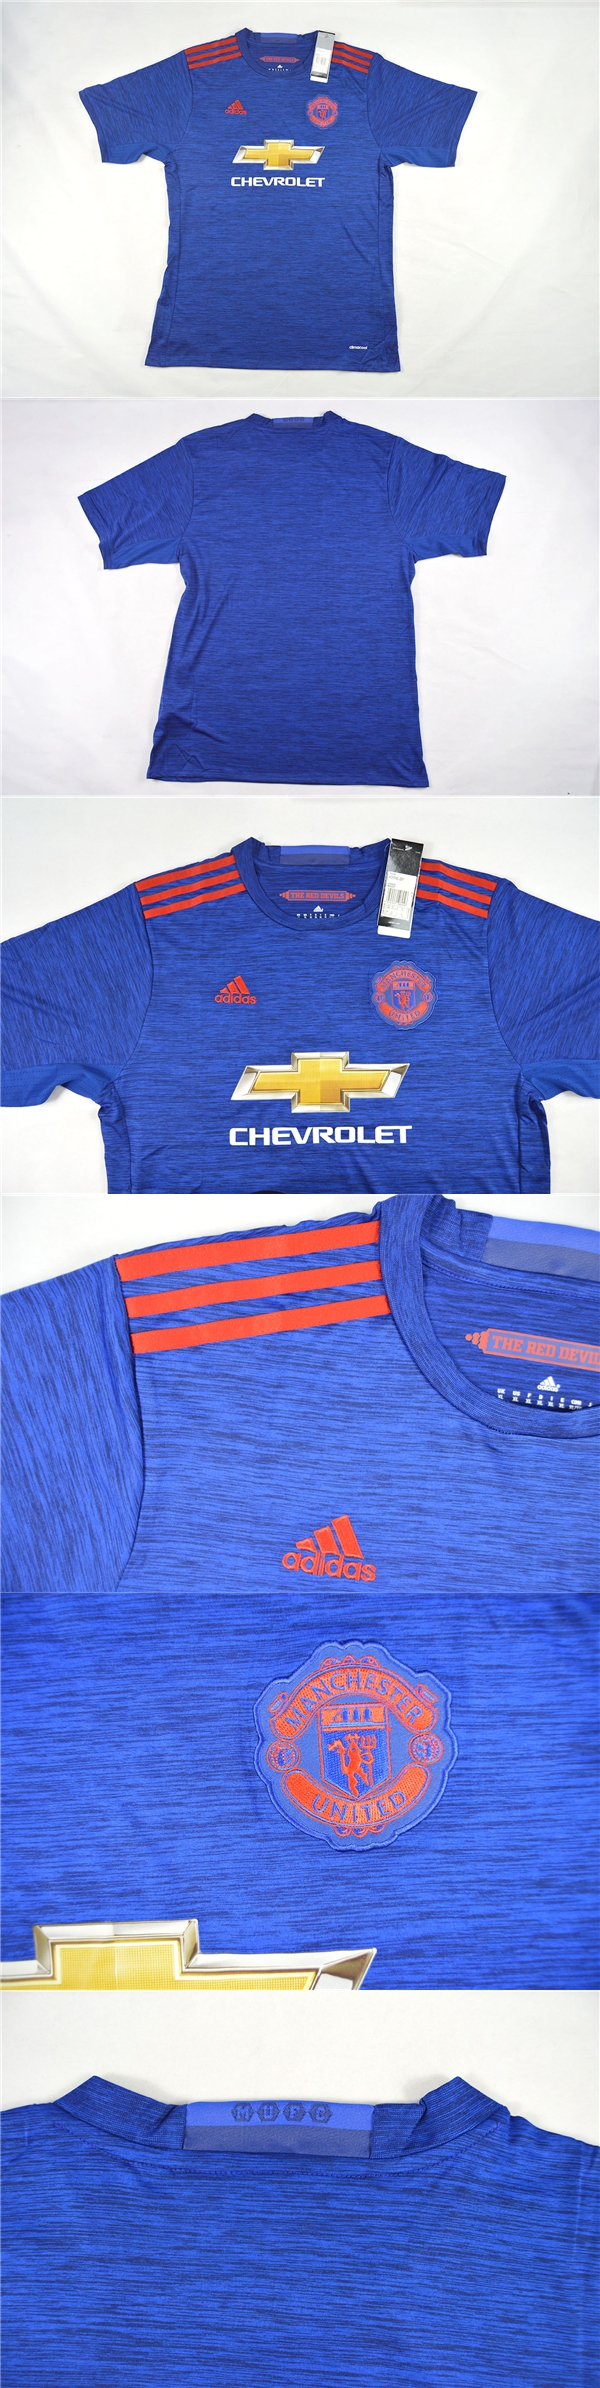 8a6a30ef918 Cheap Soccer Jersey · Page 284 Wholesale Sports ...